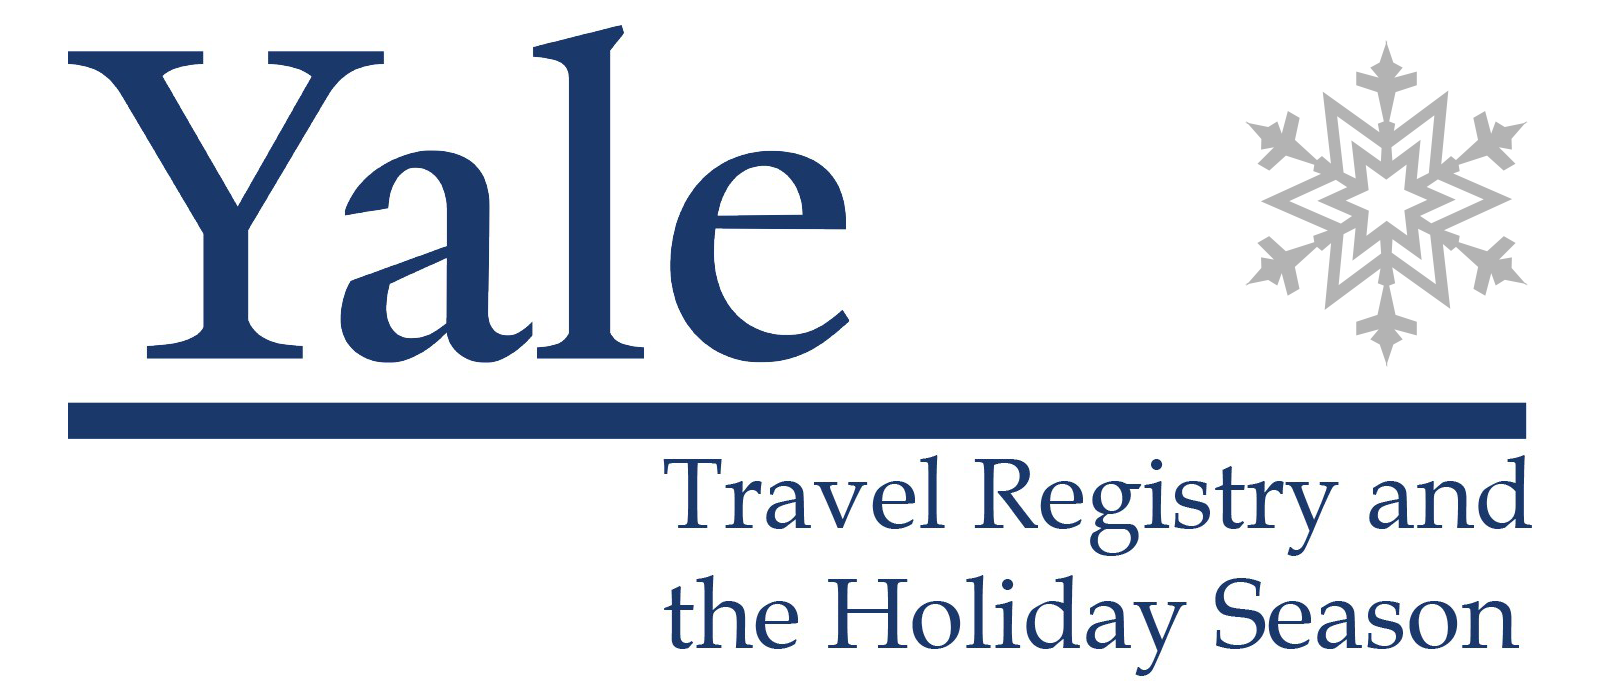 The Yale Travel Registry & Veoci - Watching Over the University Community